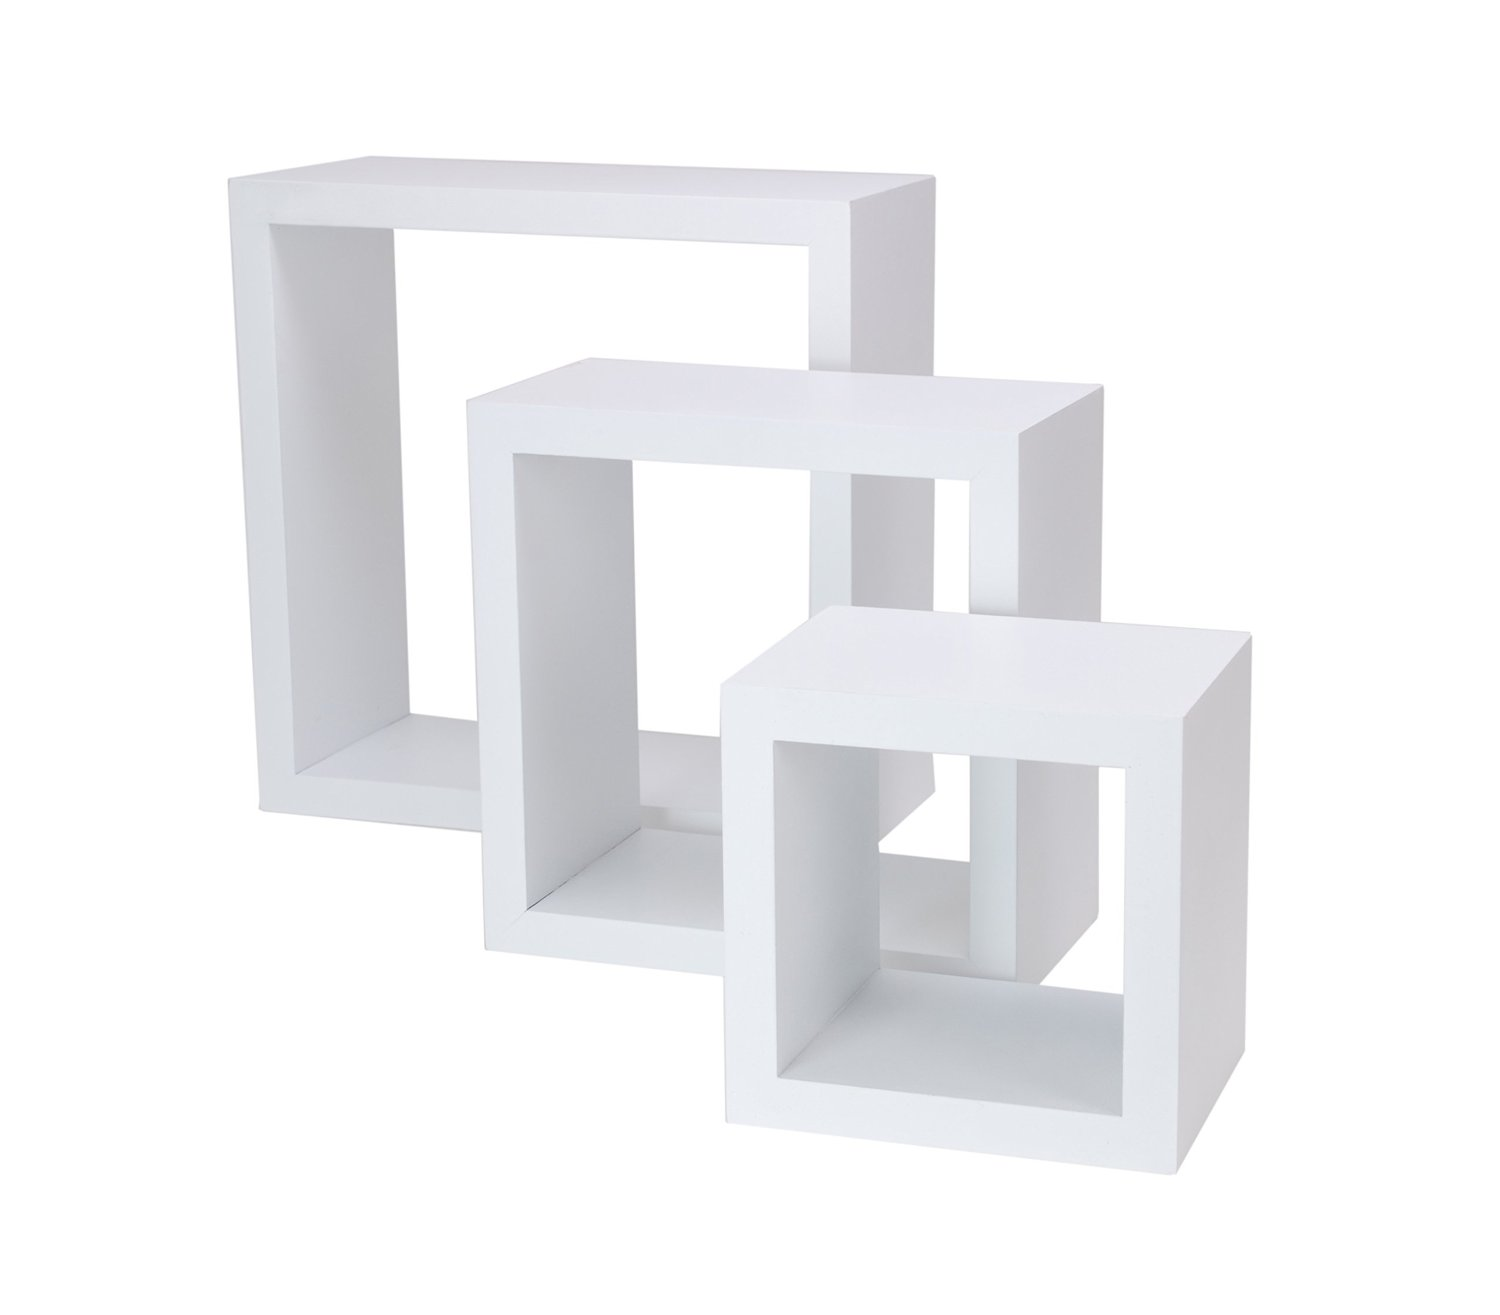 Wall Mounted Shelves Canada White Floating Wall Shelves Set Of 3 For Your Rooms Review